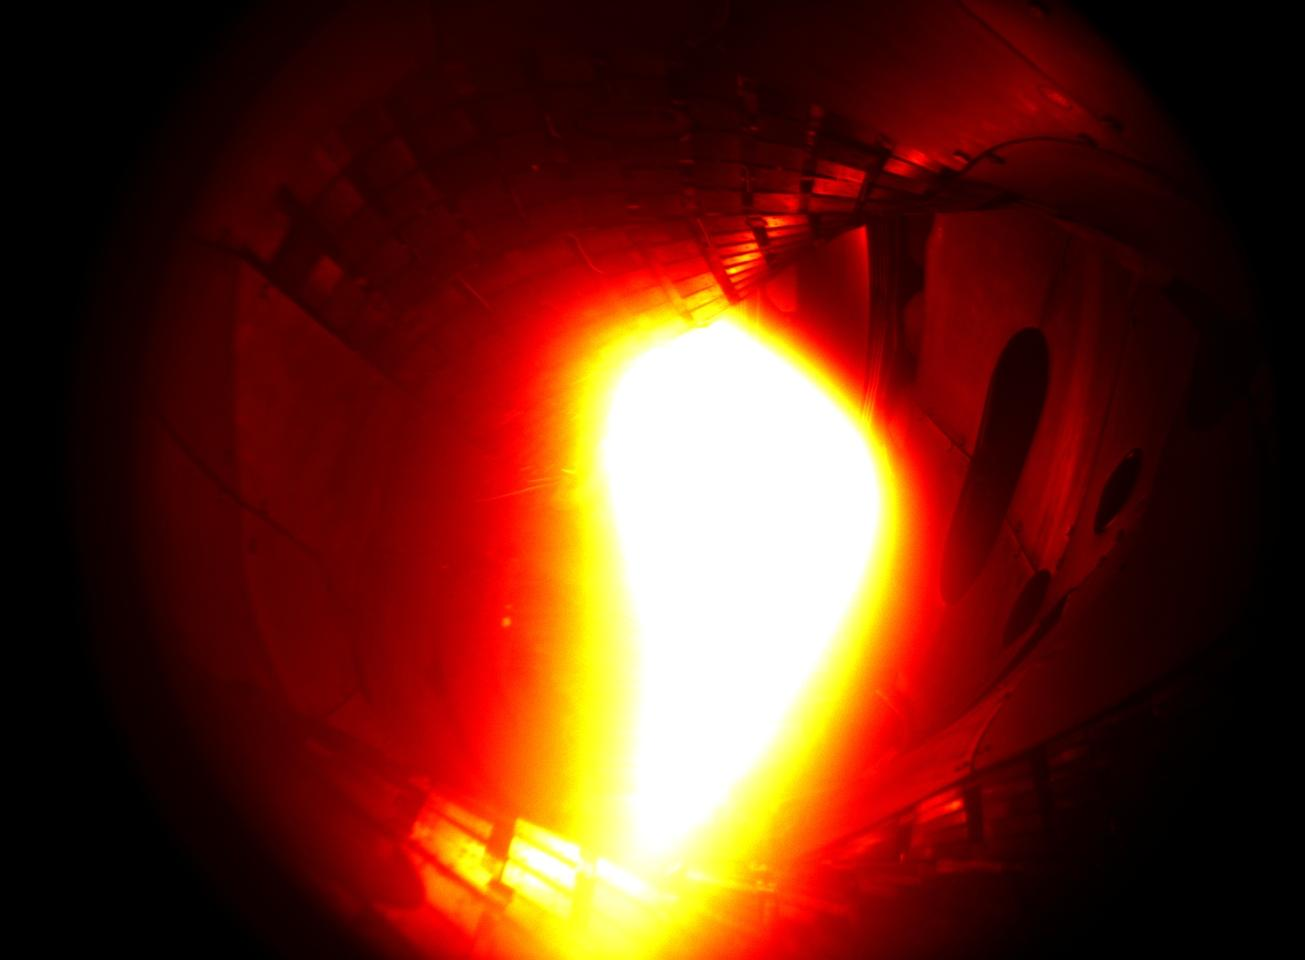 The first plasma produced by the Wendelstein 7-X stellarator in 2015